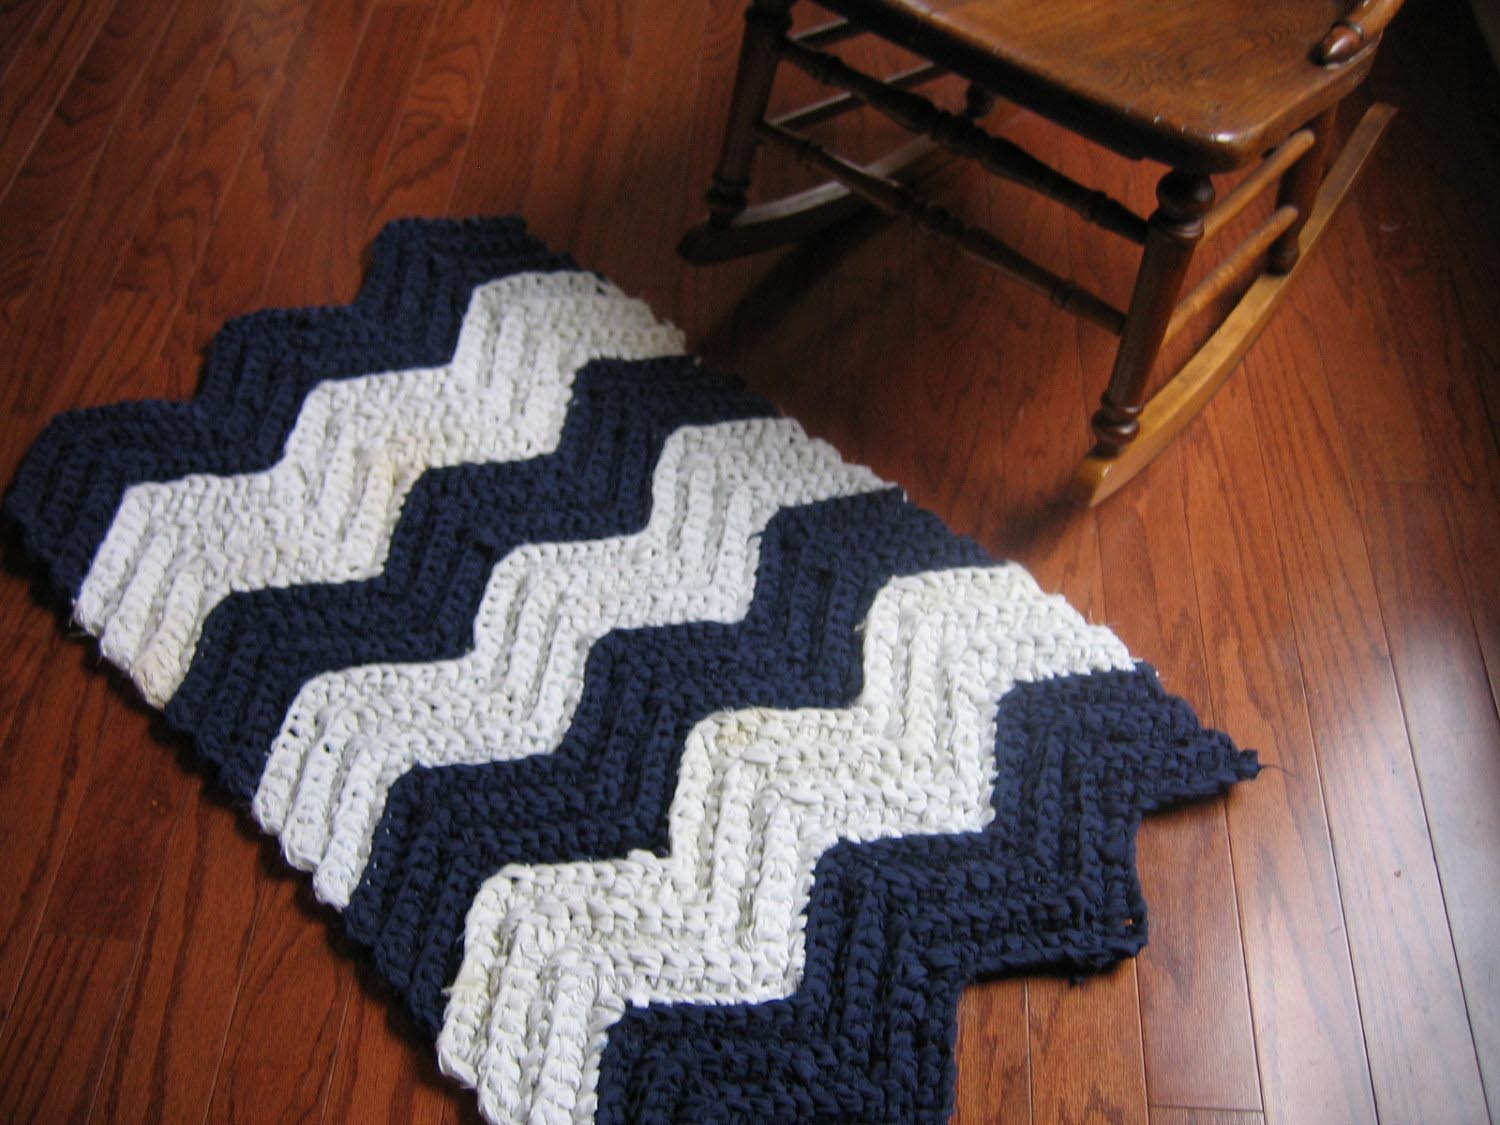 Crochet Rag Rug Instructions